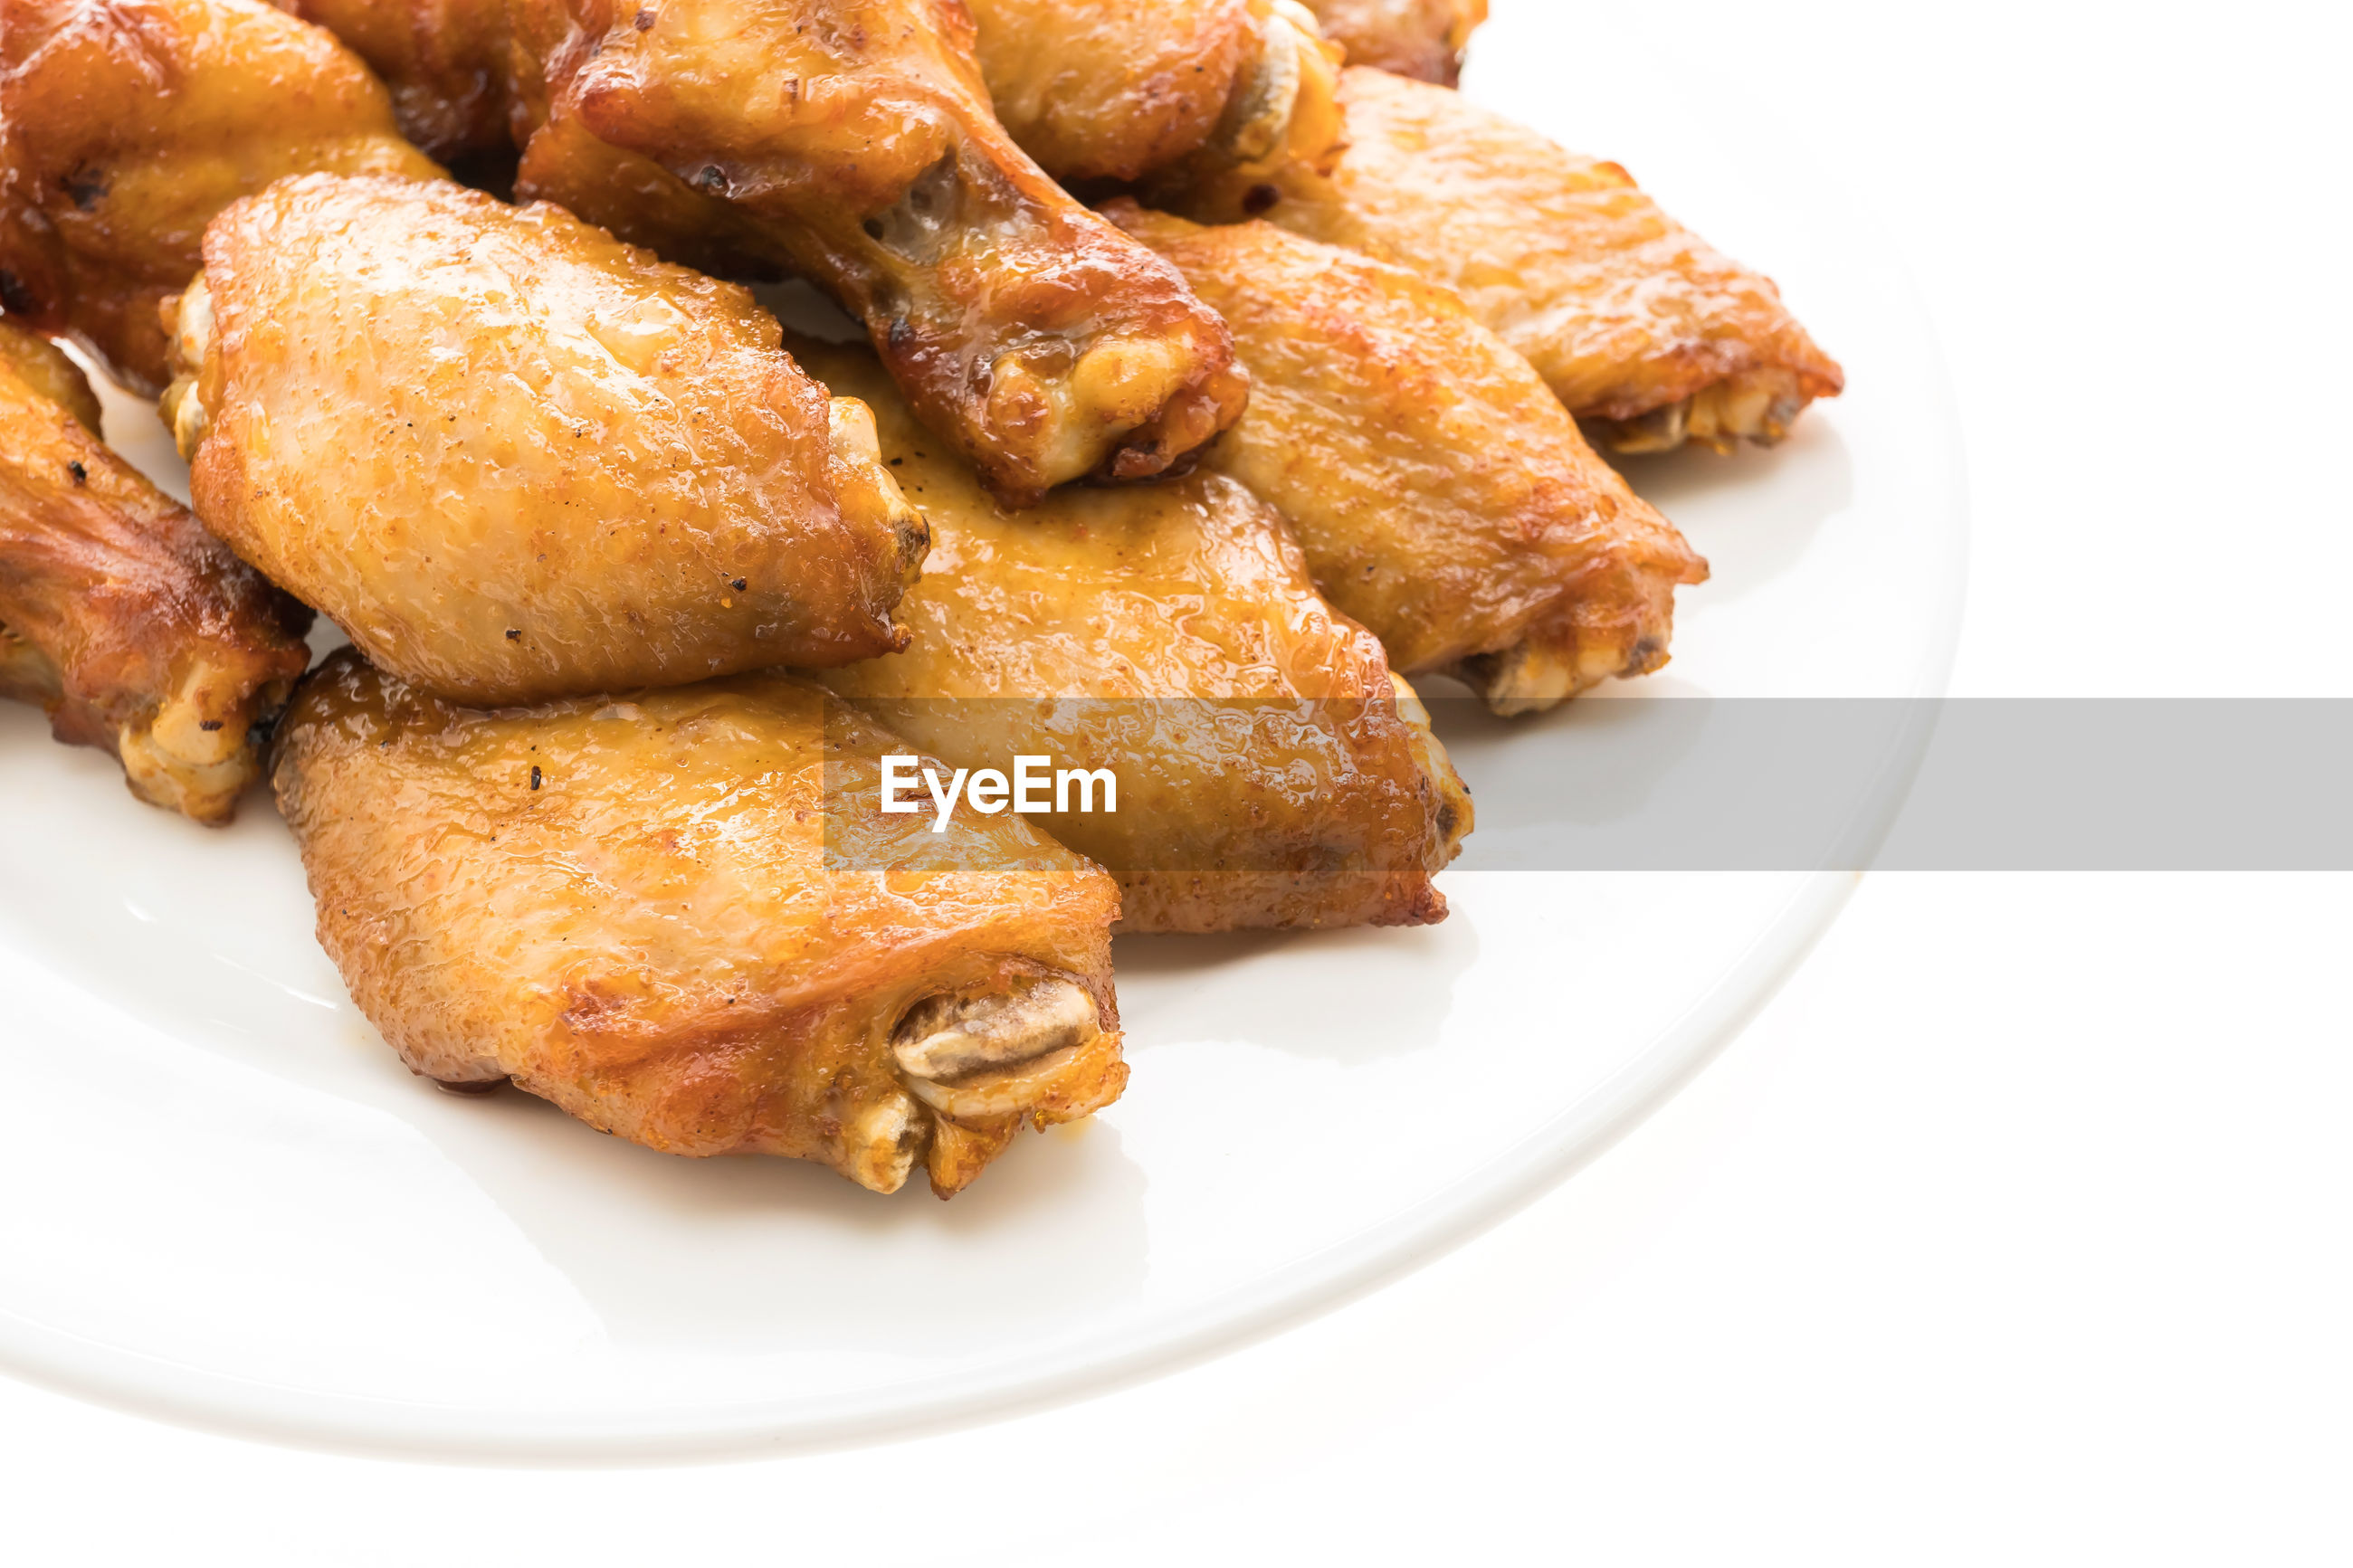 HIGH ANGLE VIEW OF BREAD IN PLATE ON WHITE BACKGROUND